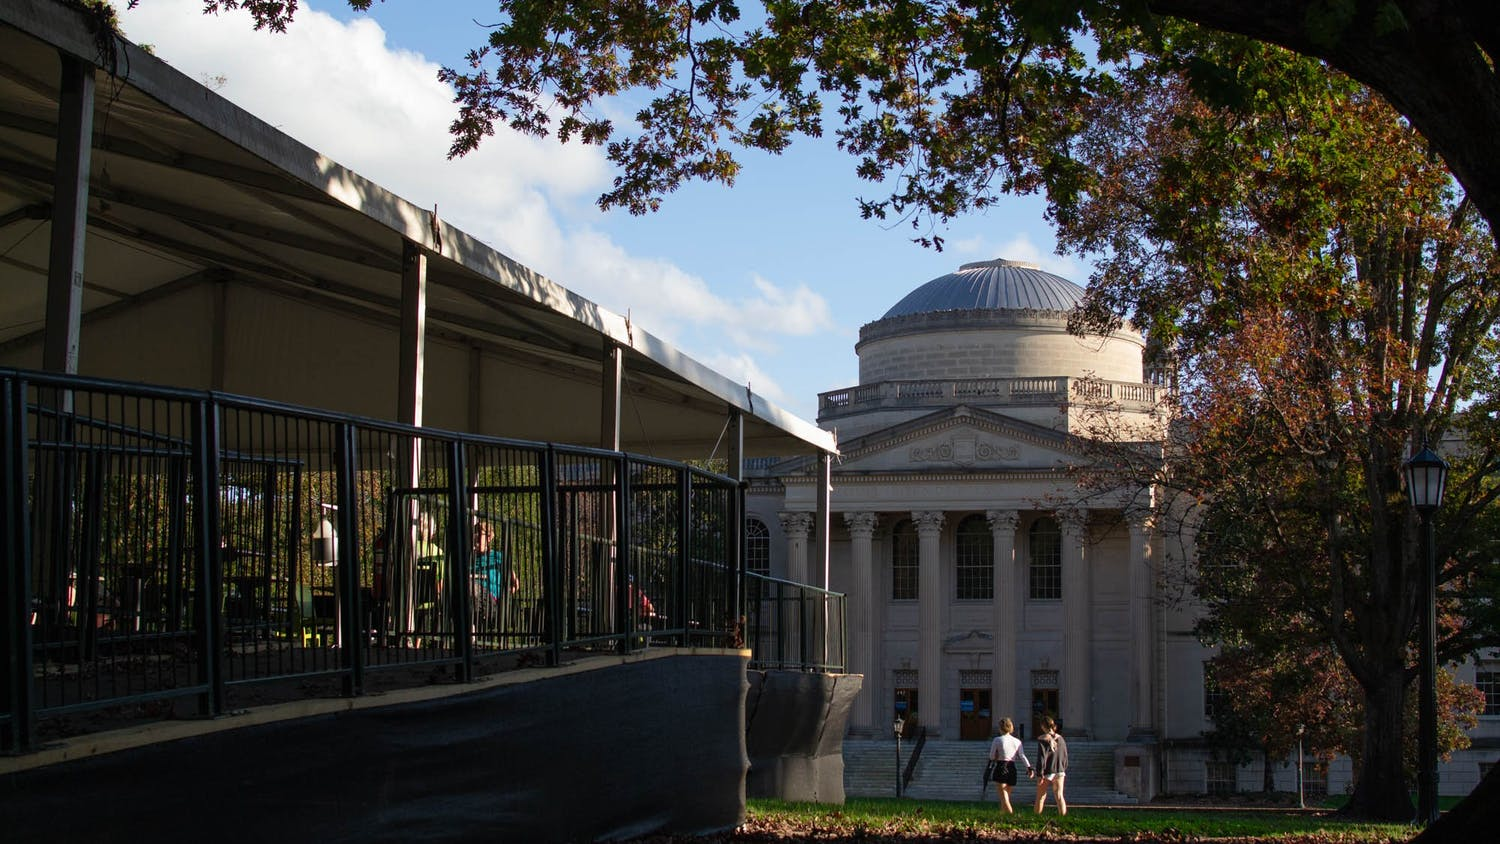 Students study at the outdoor and socially-distanced study area the University built on Polk Place as other students walk past Wilson Library on Sunday, Nov. 15, 2020.